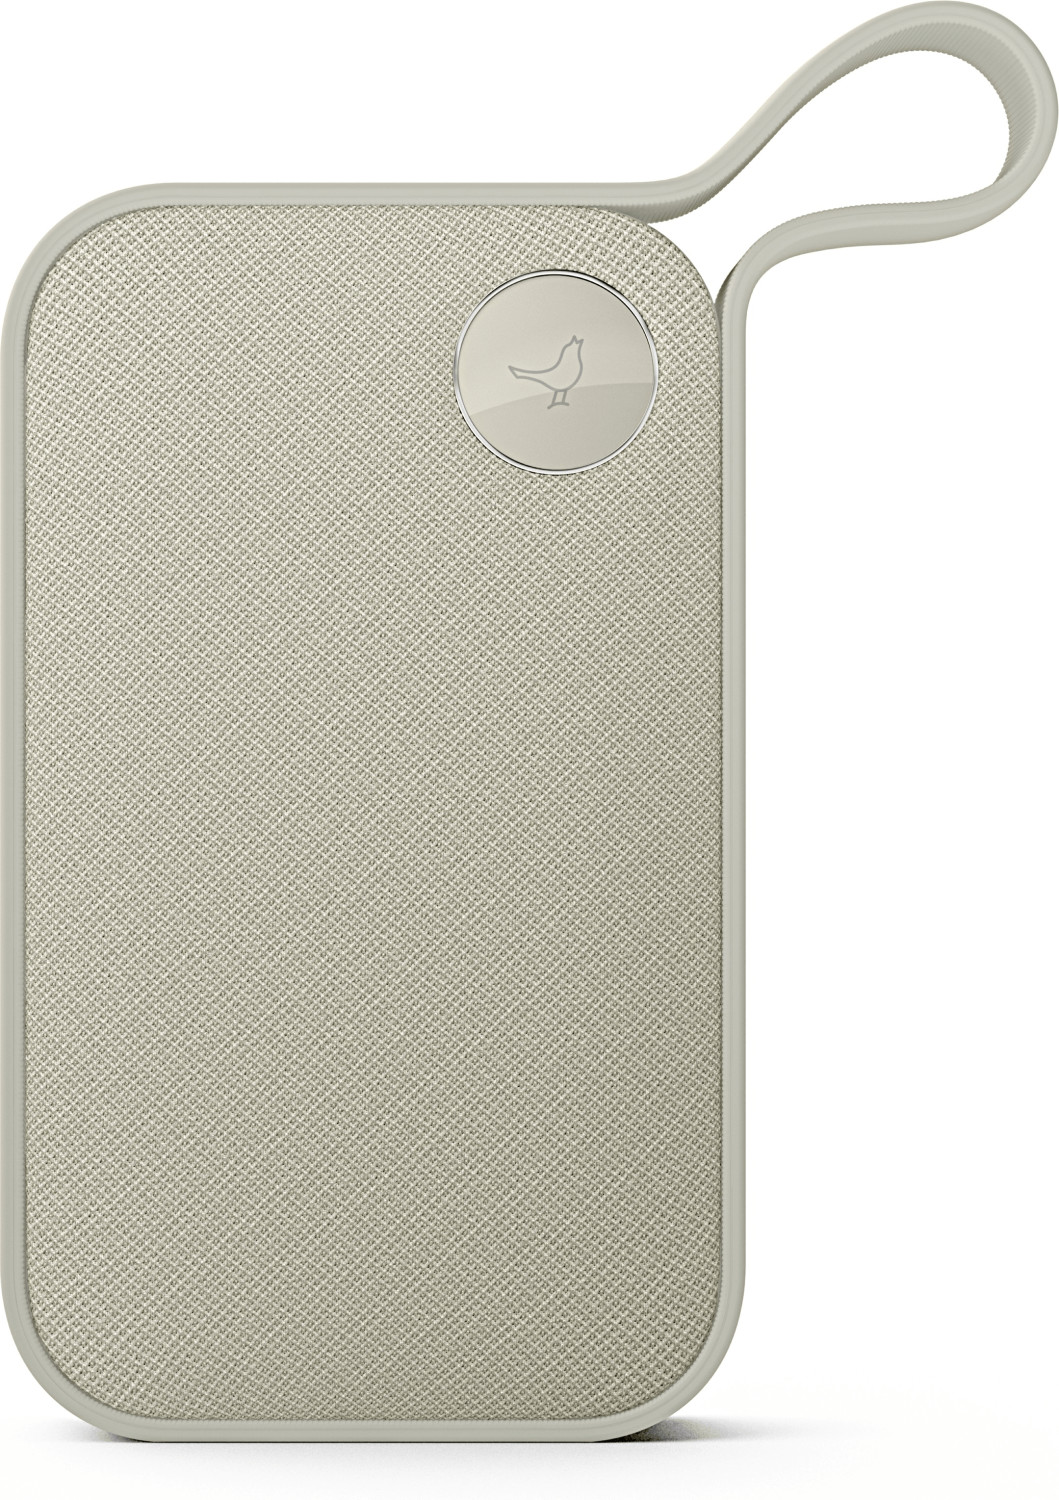 Image of Libratone One Style cloudy grey